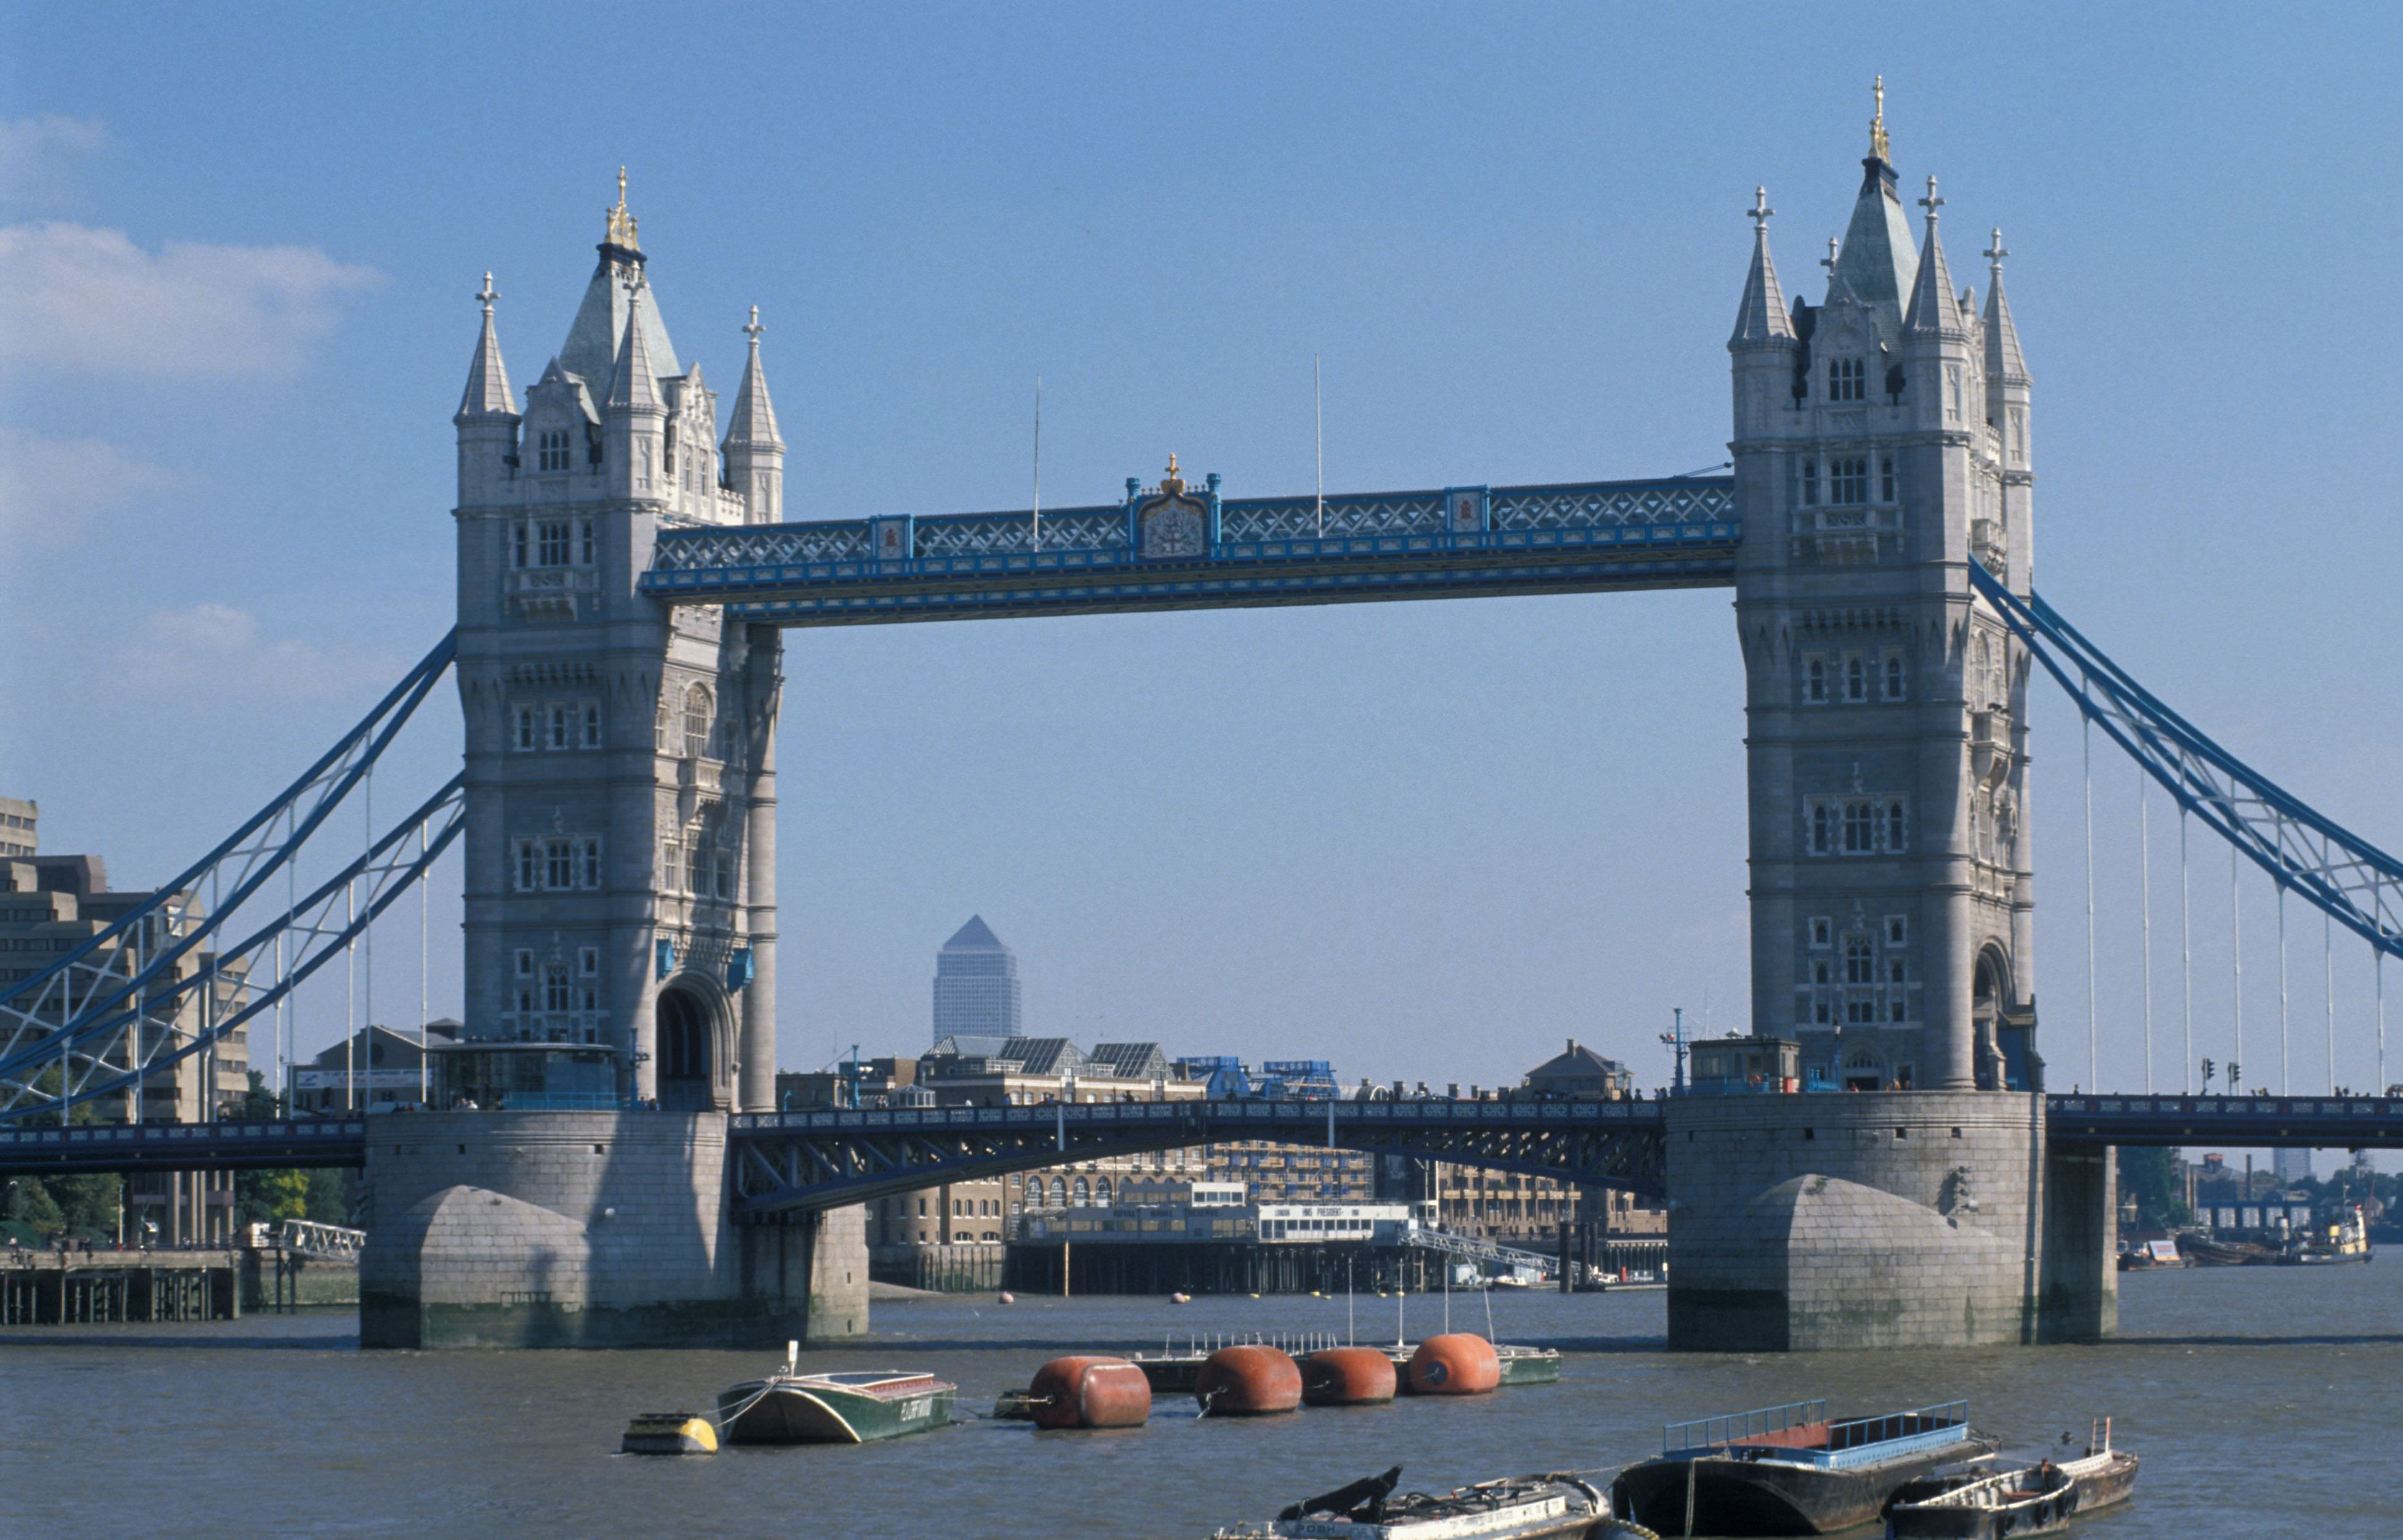 Tower-bridge-londen-filmlocatie